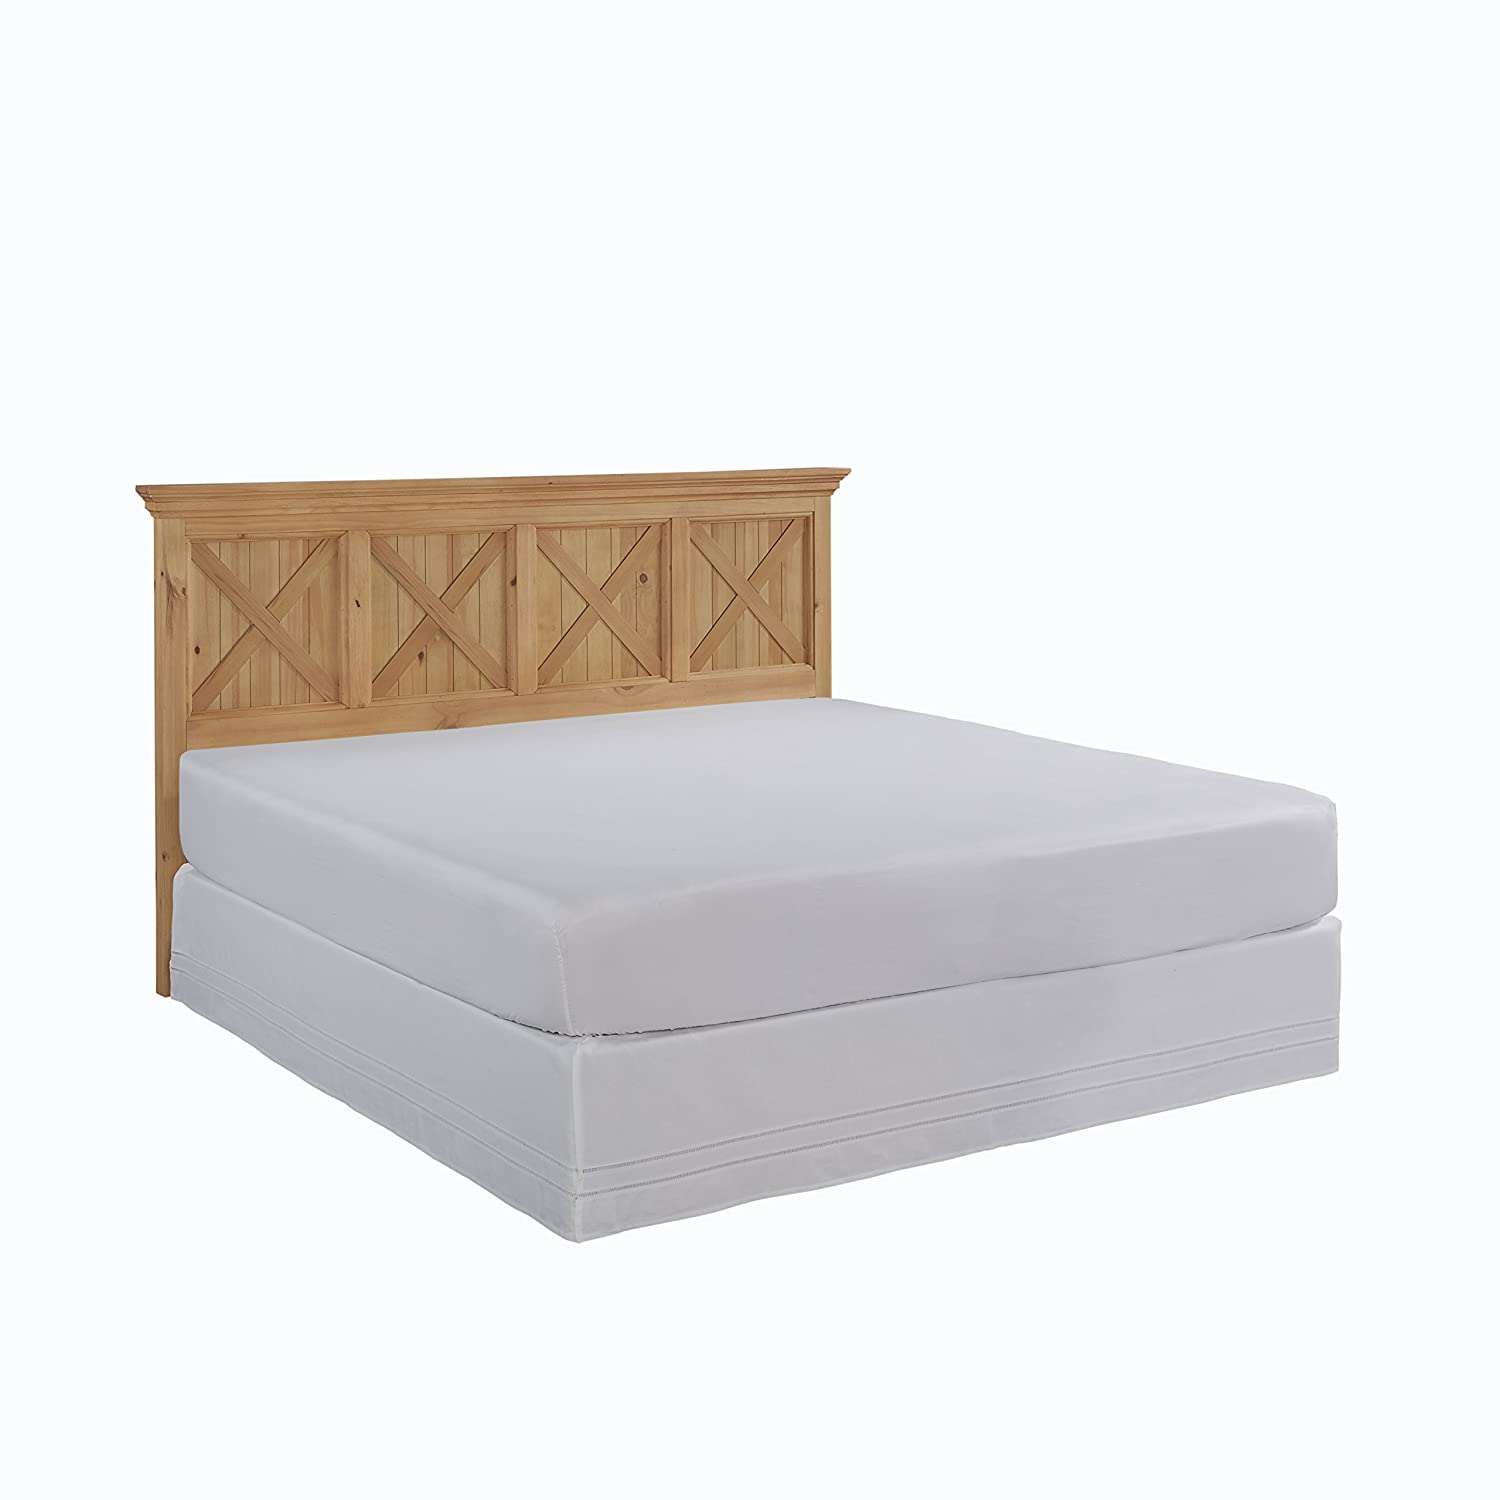 Home Styles 5524-600 Country Lodge King Bed, Pine